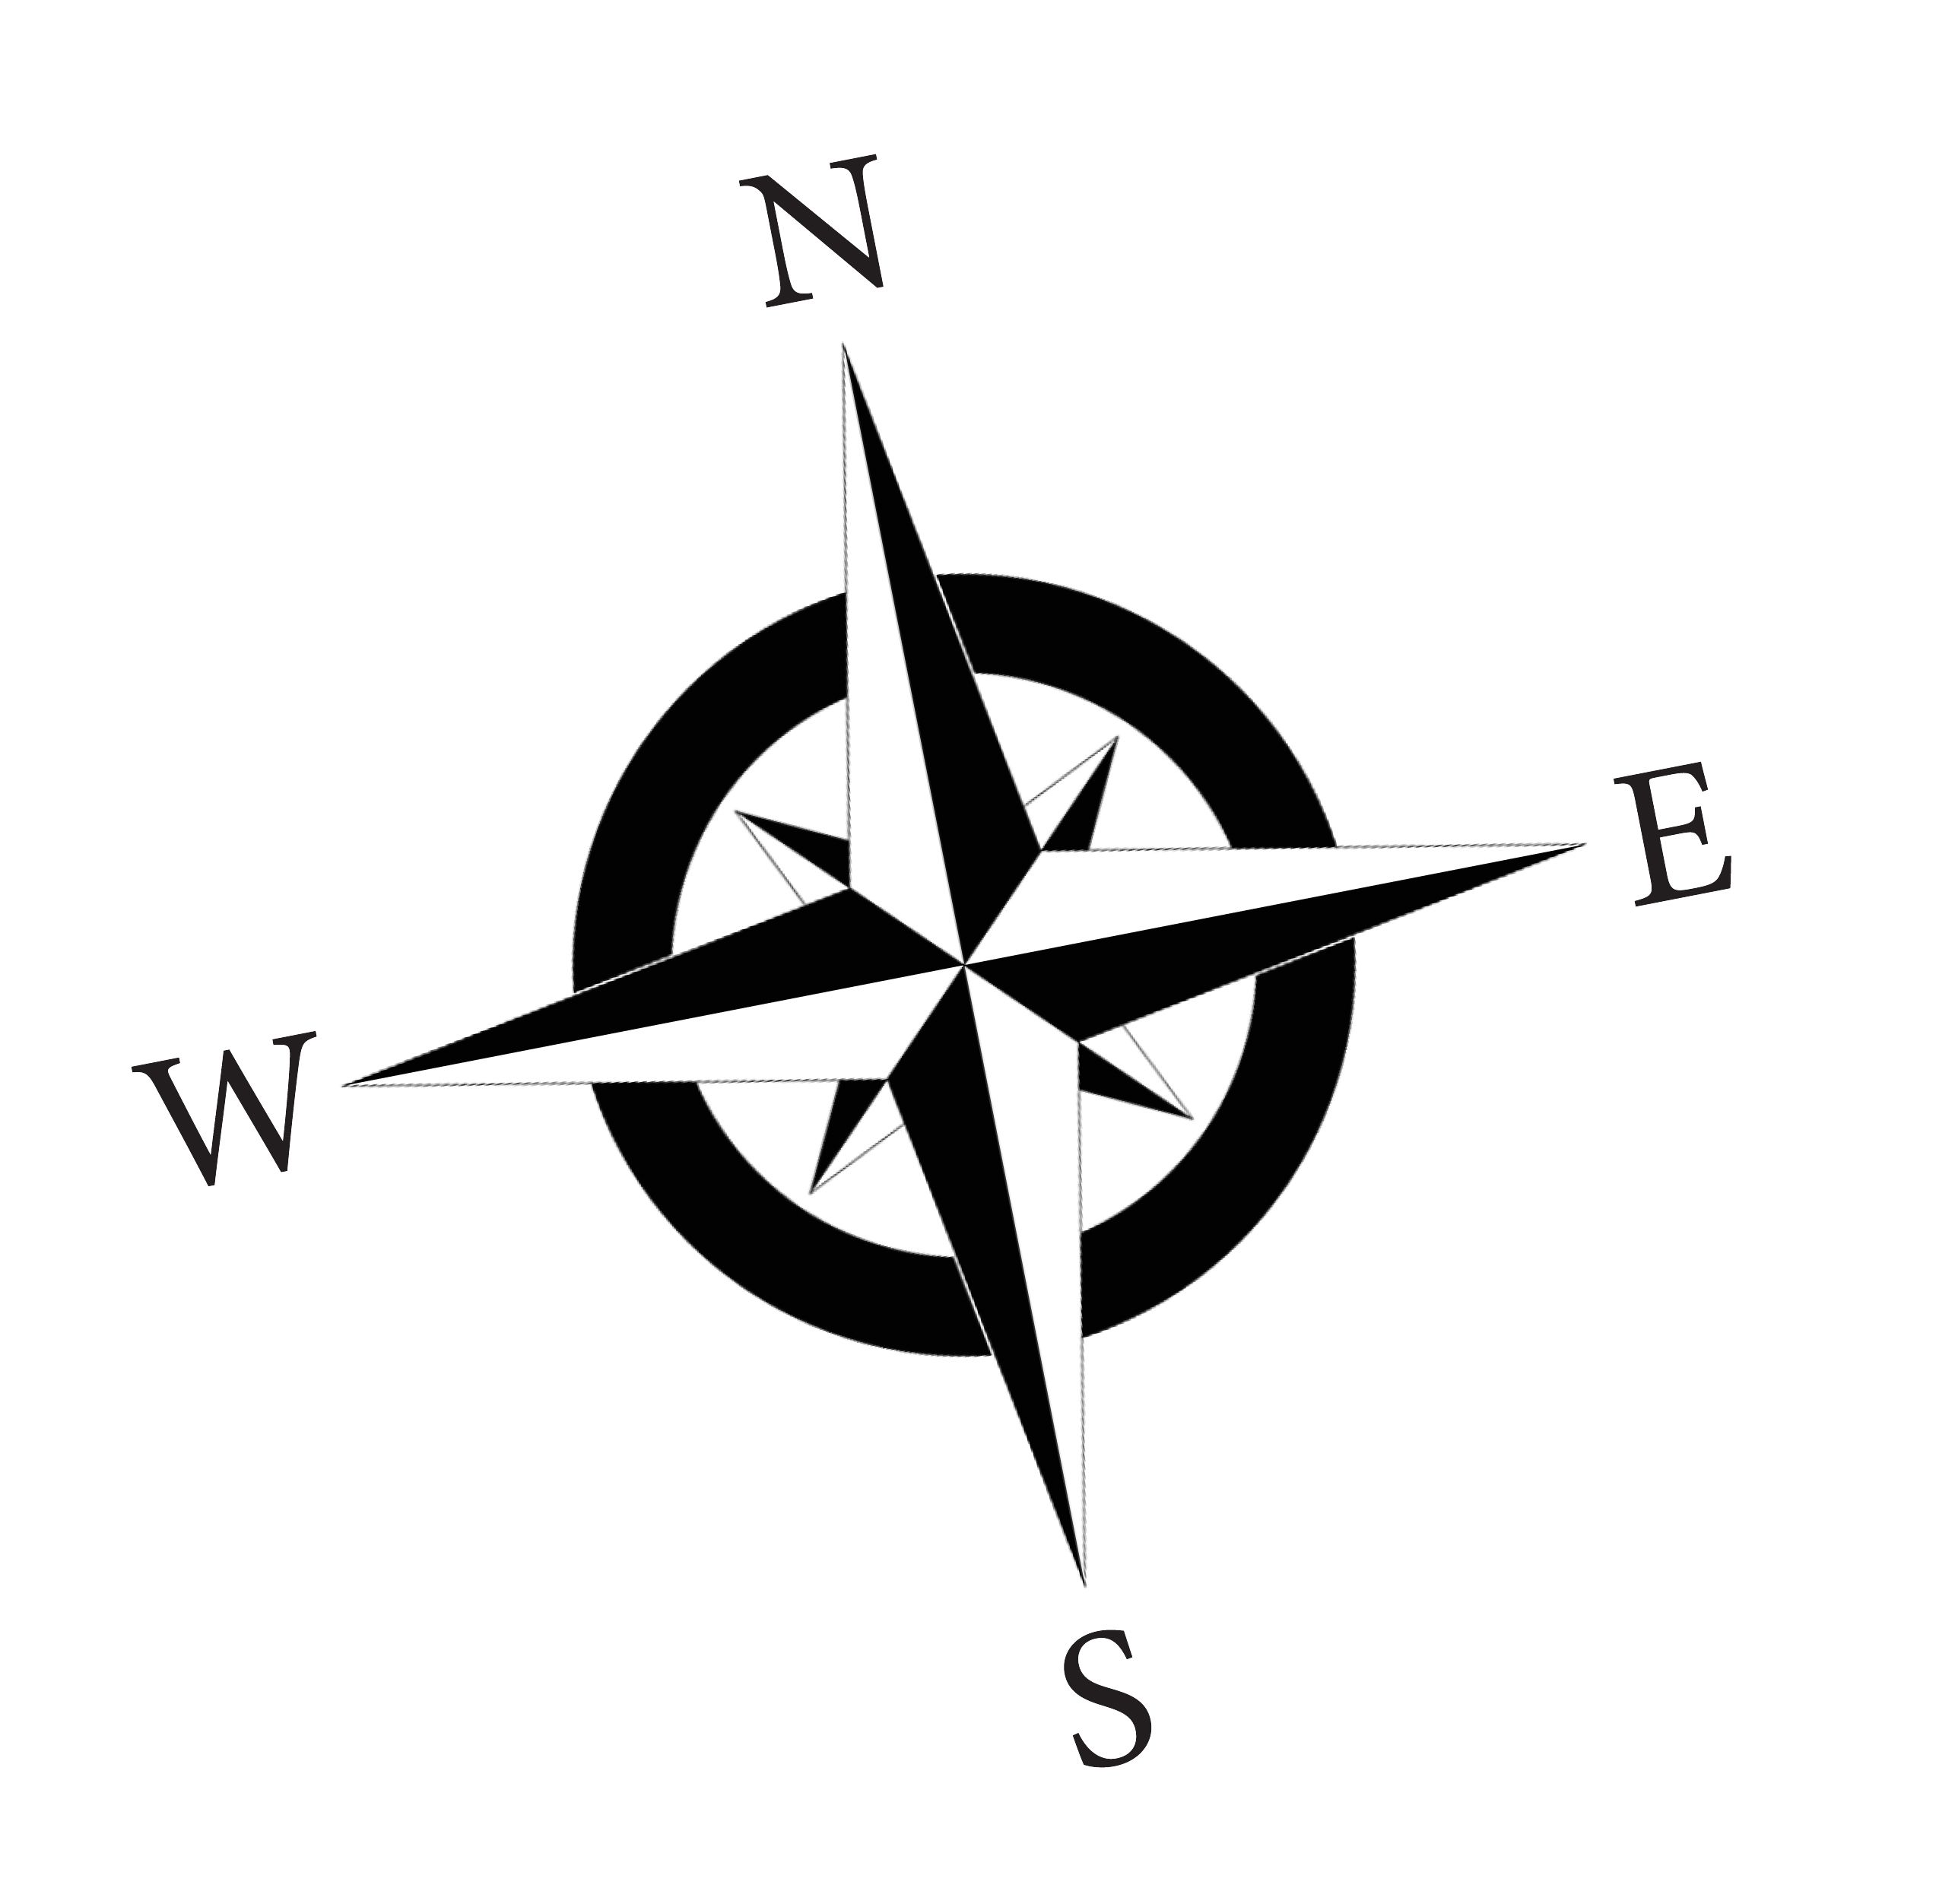 Compass rose pictures clipart black and white stock Pin by Kaila Lusson on Tattoos | Simple compass tattoo, Simple ... black and white stock